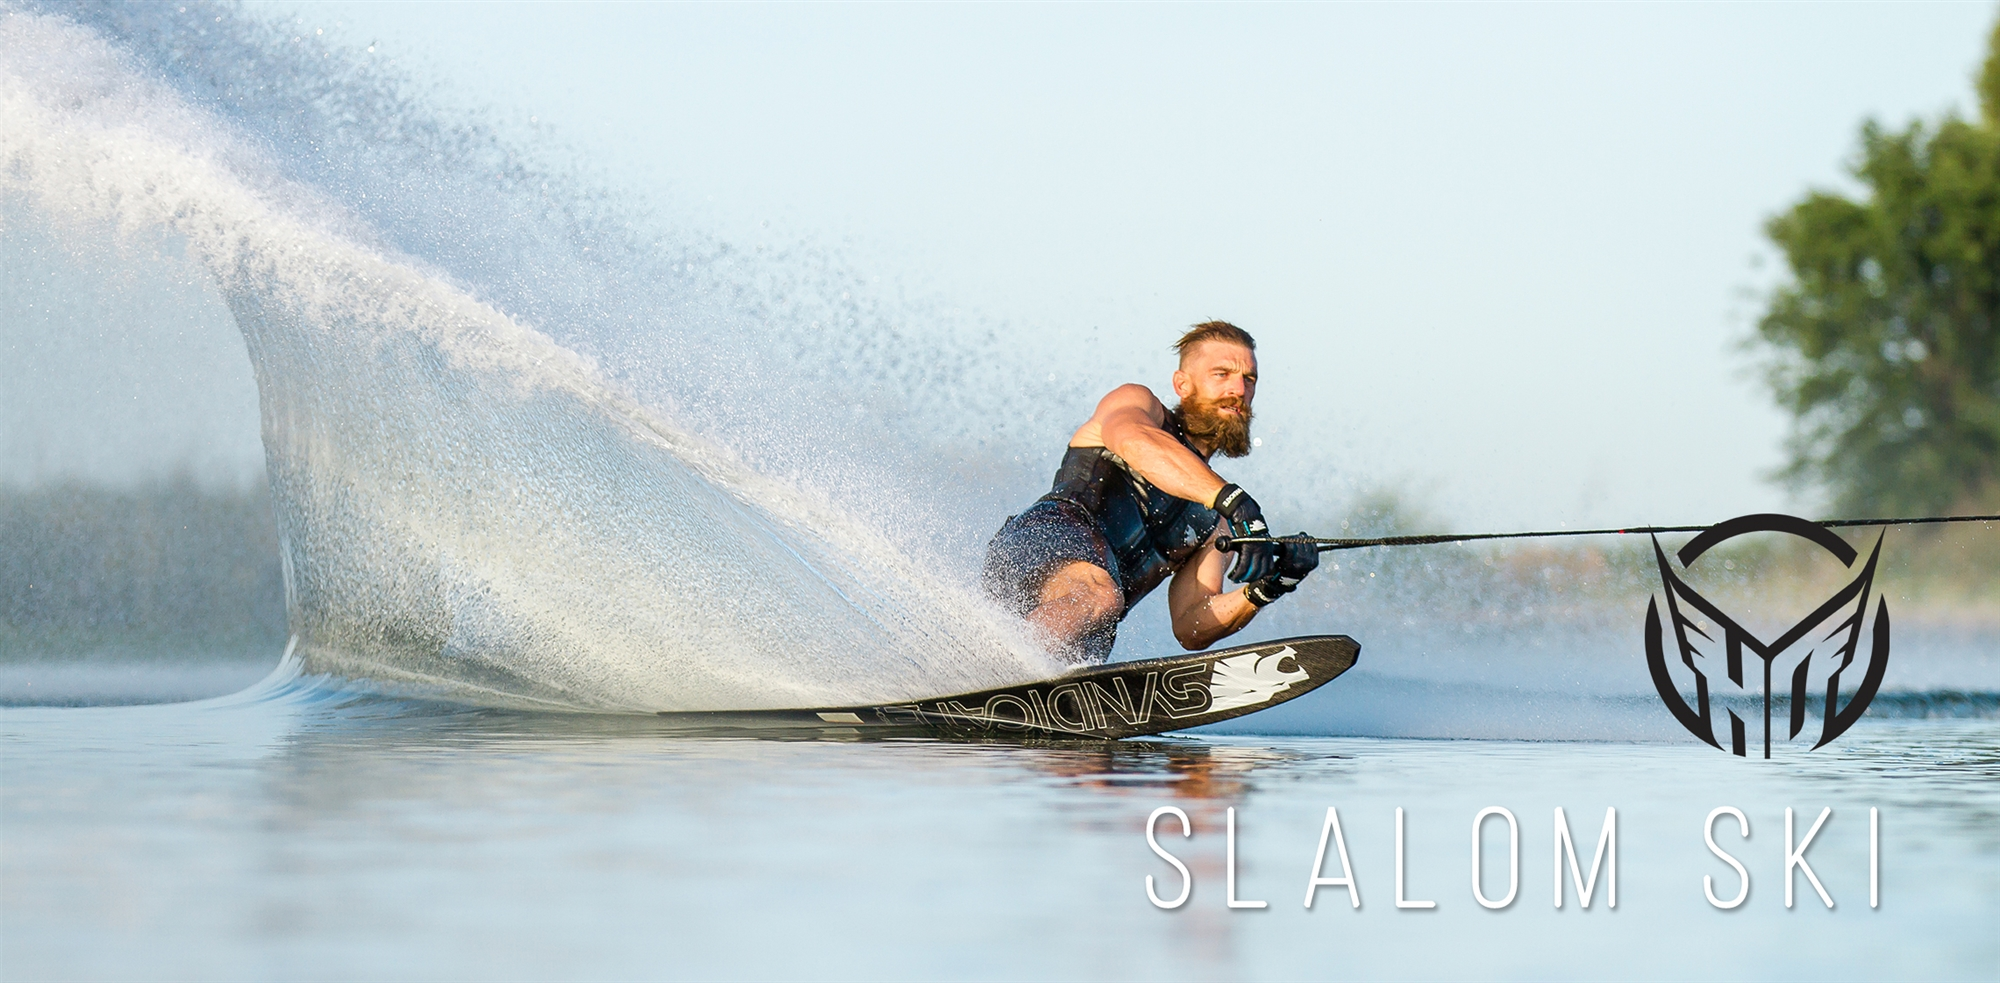 Ho Water Skis Crossover And Freestyle Slalom